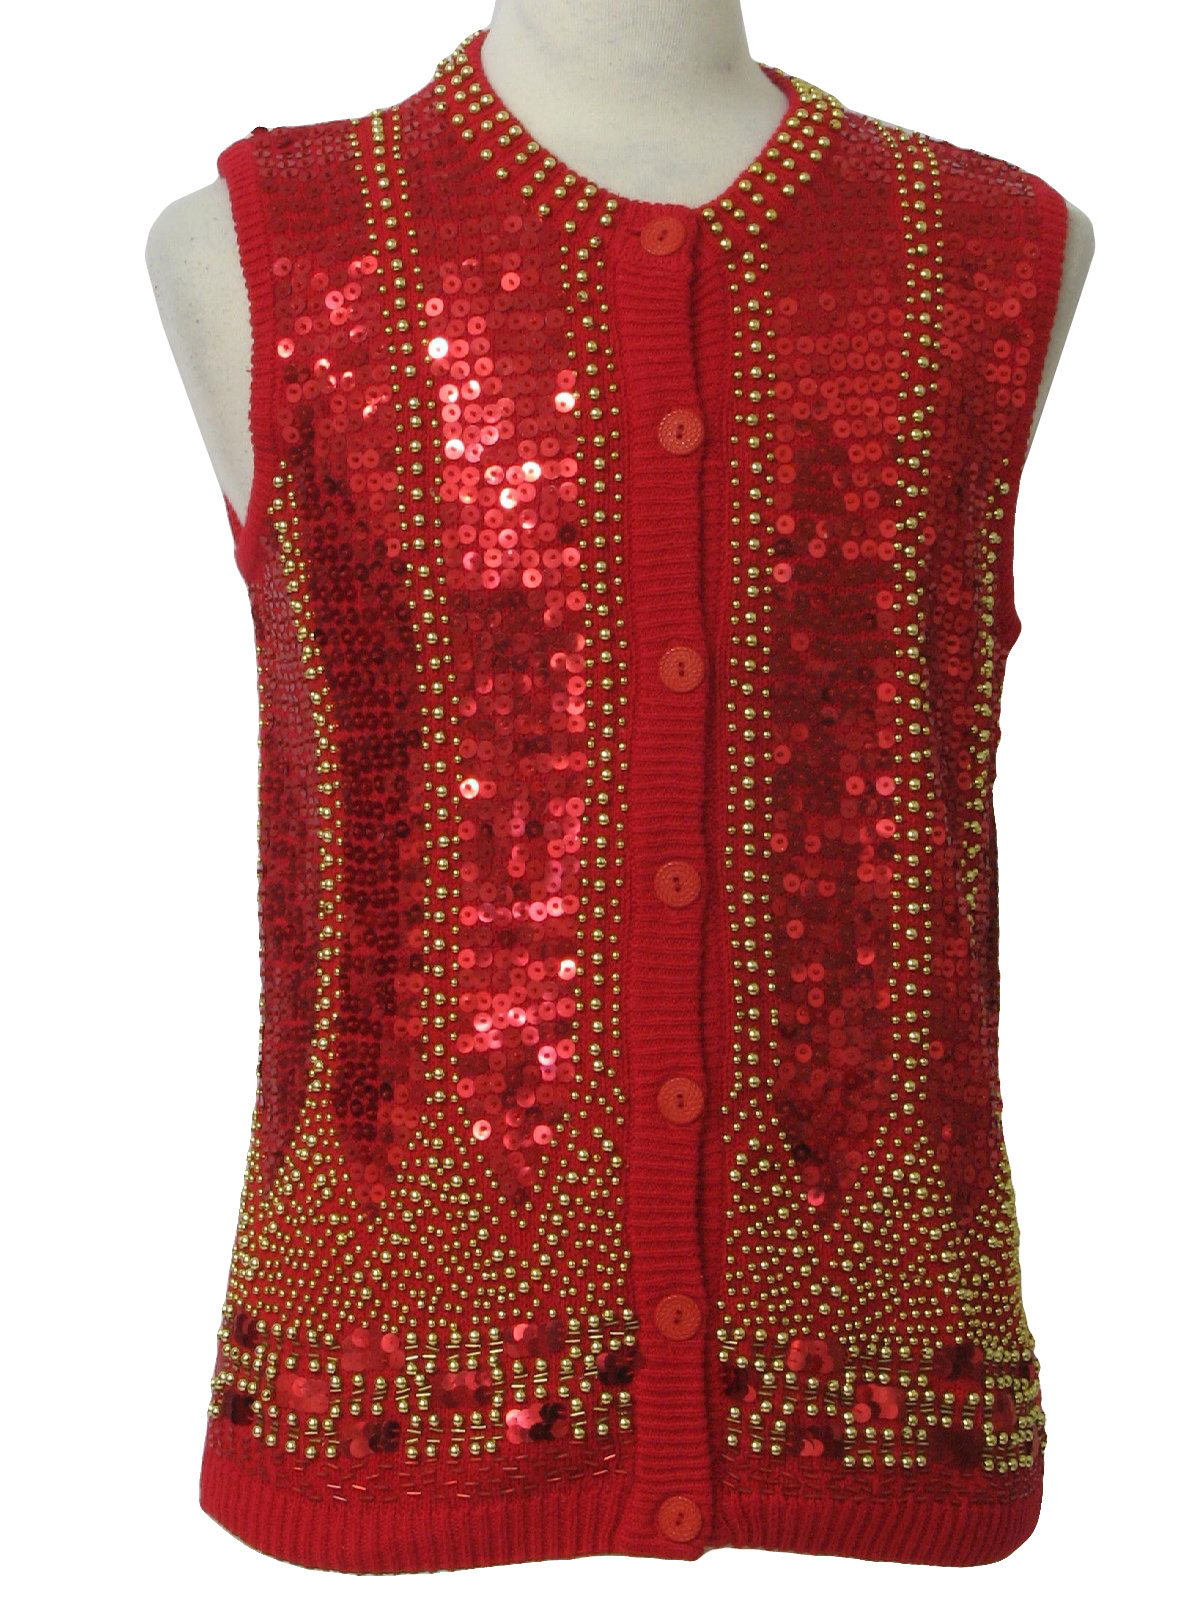 Womens Ugly Christmas Sequined Cocktail Sweater Vest